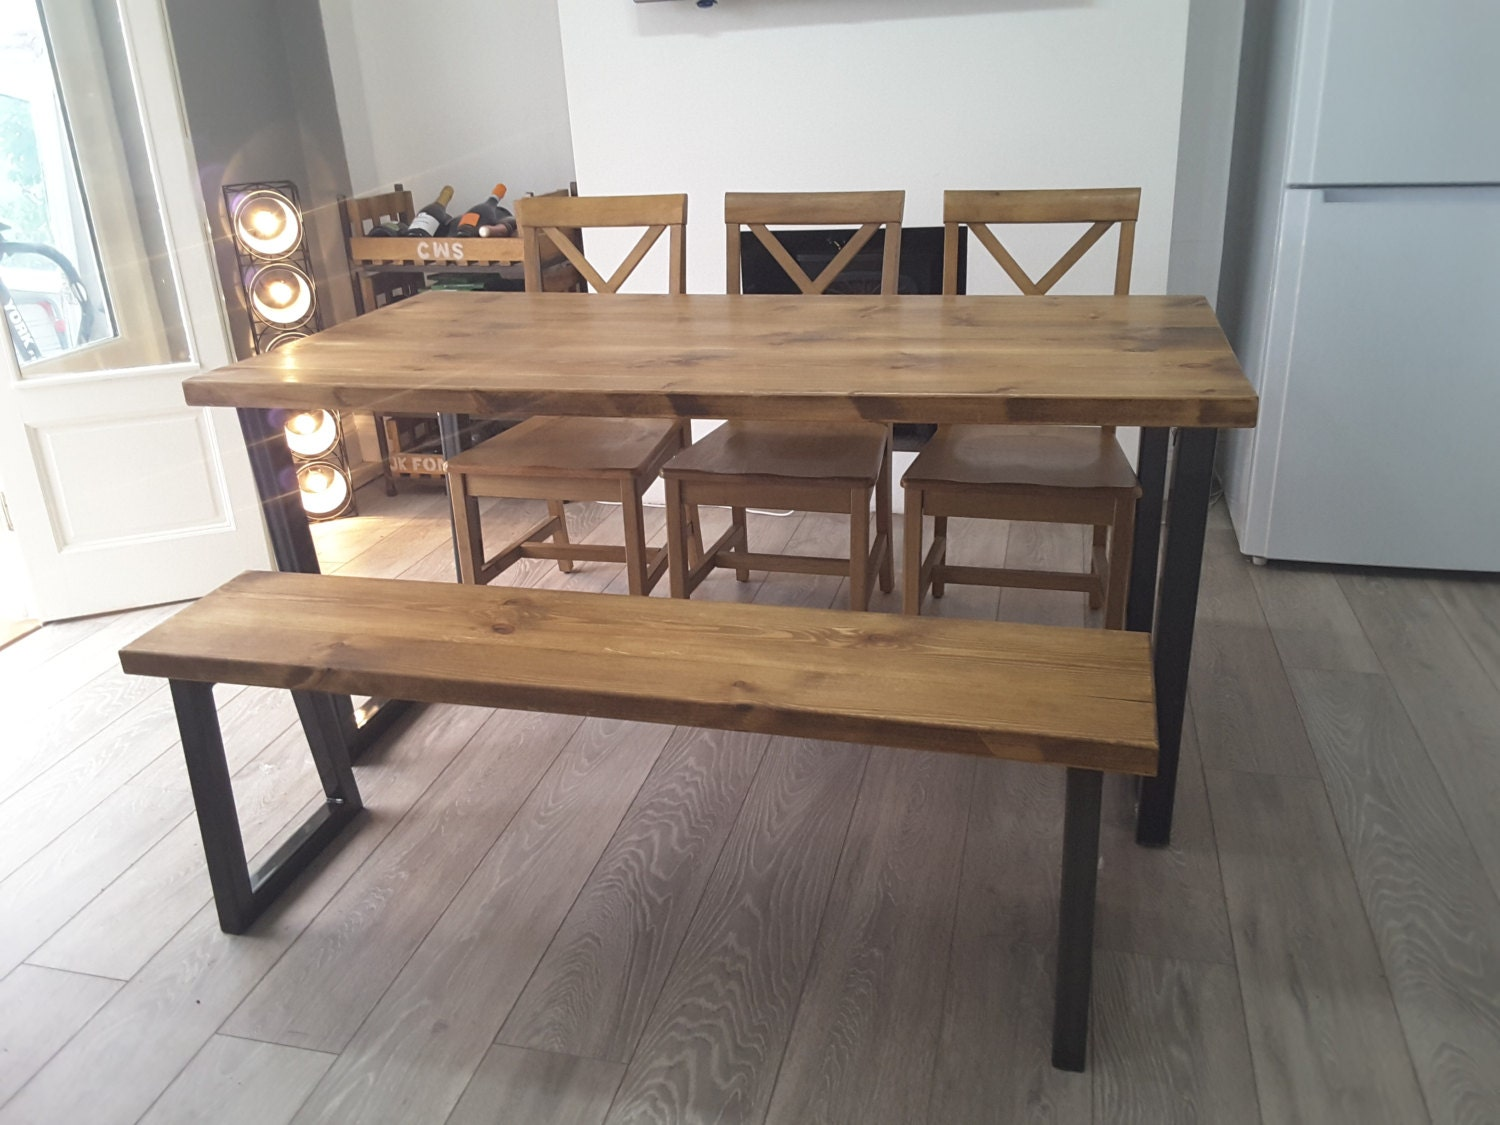 Reclaimed Wood Furniture Etsy. 🔎zoom Reclaimed Wood Furniture Etsy R